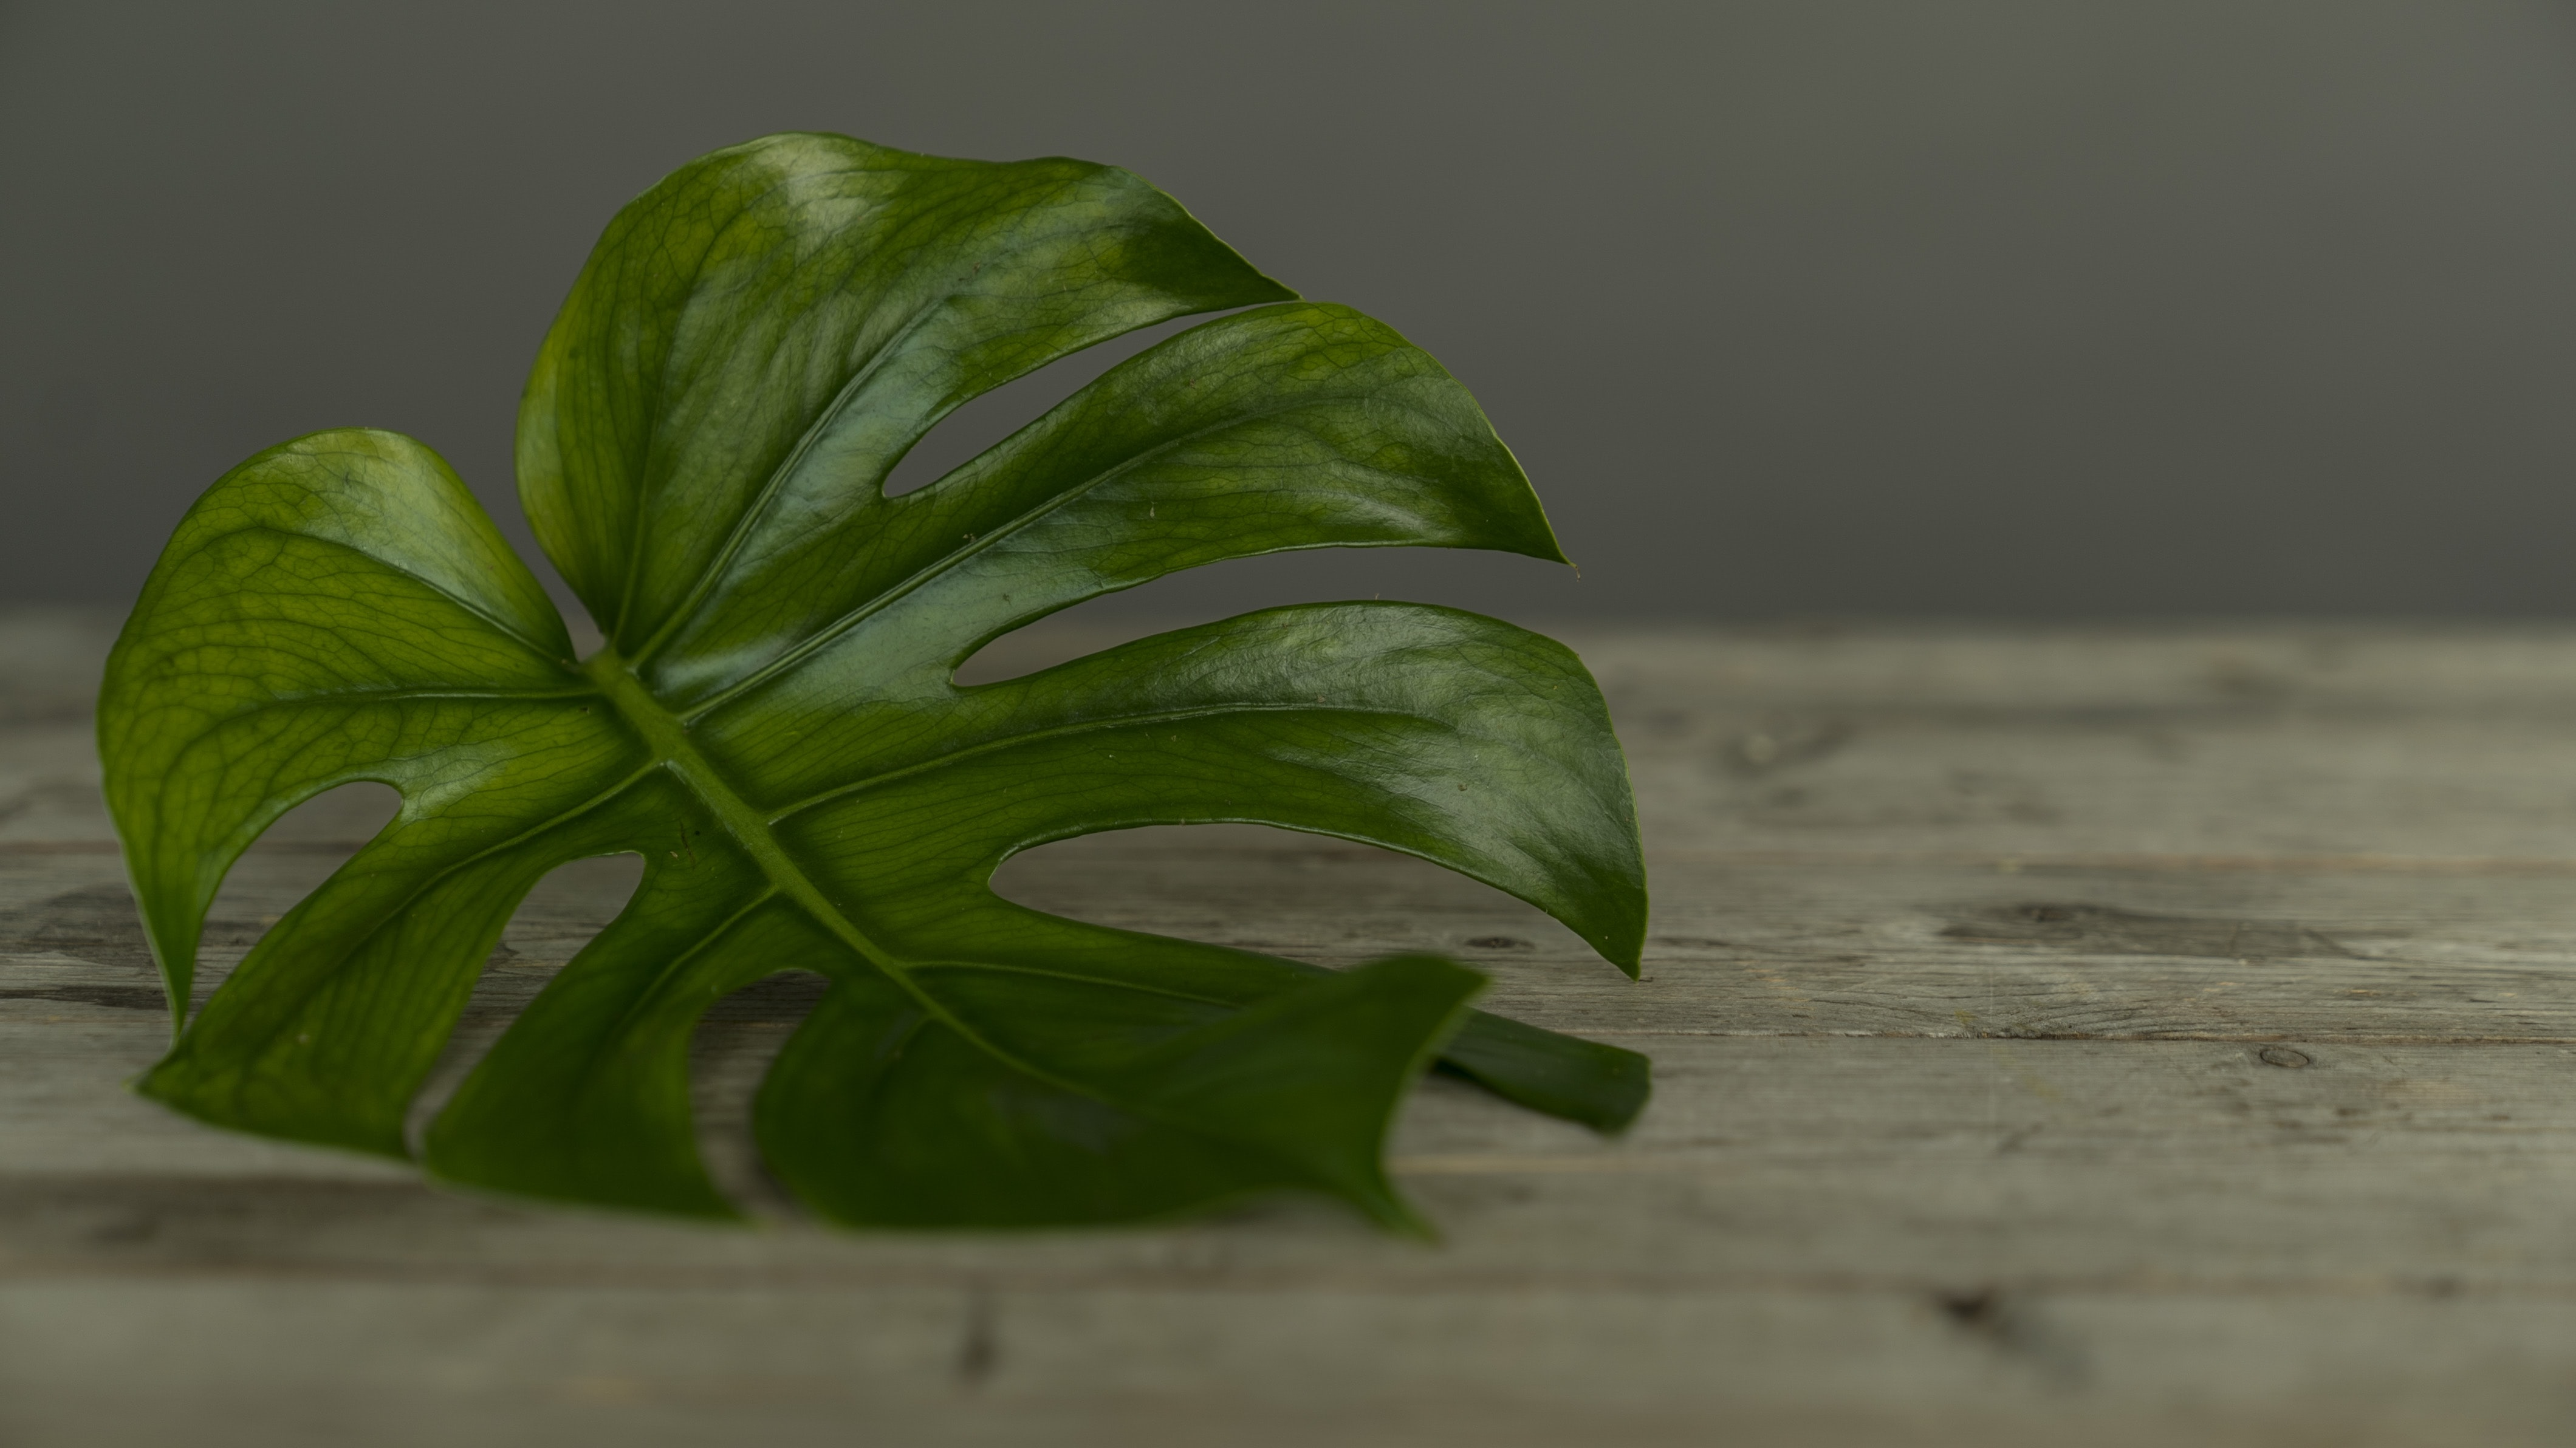 green leaf on brown surface